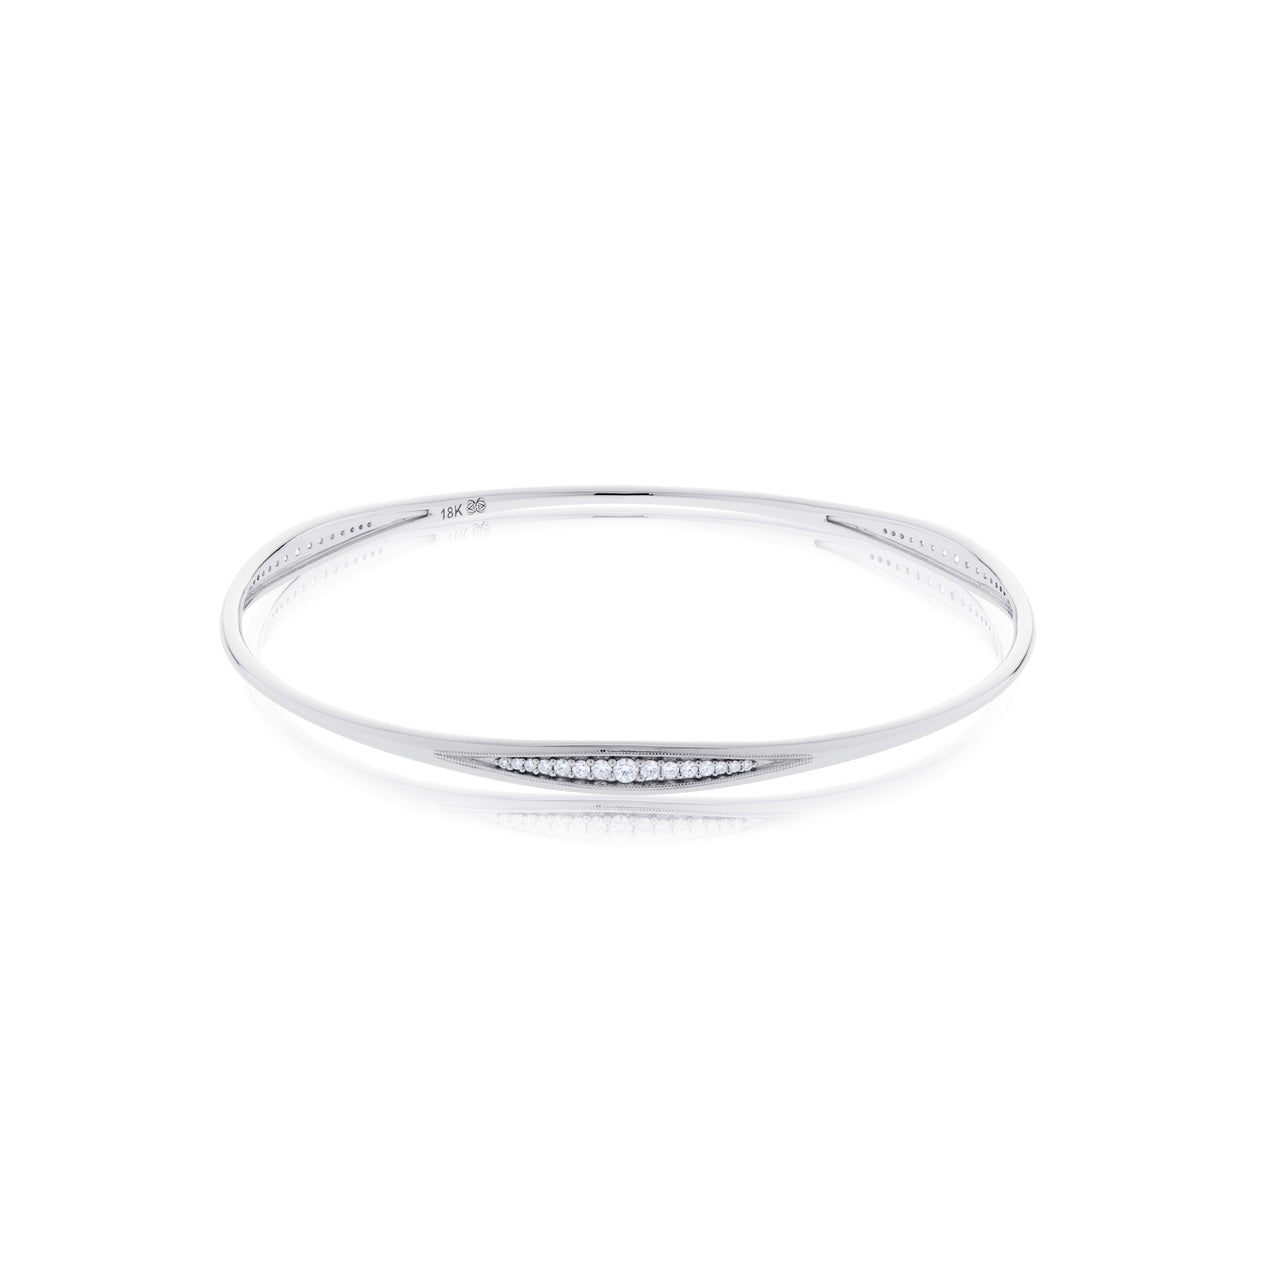 Devotion Pas de Trois 18K White Gold Diamond Channel Stacking Bangle